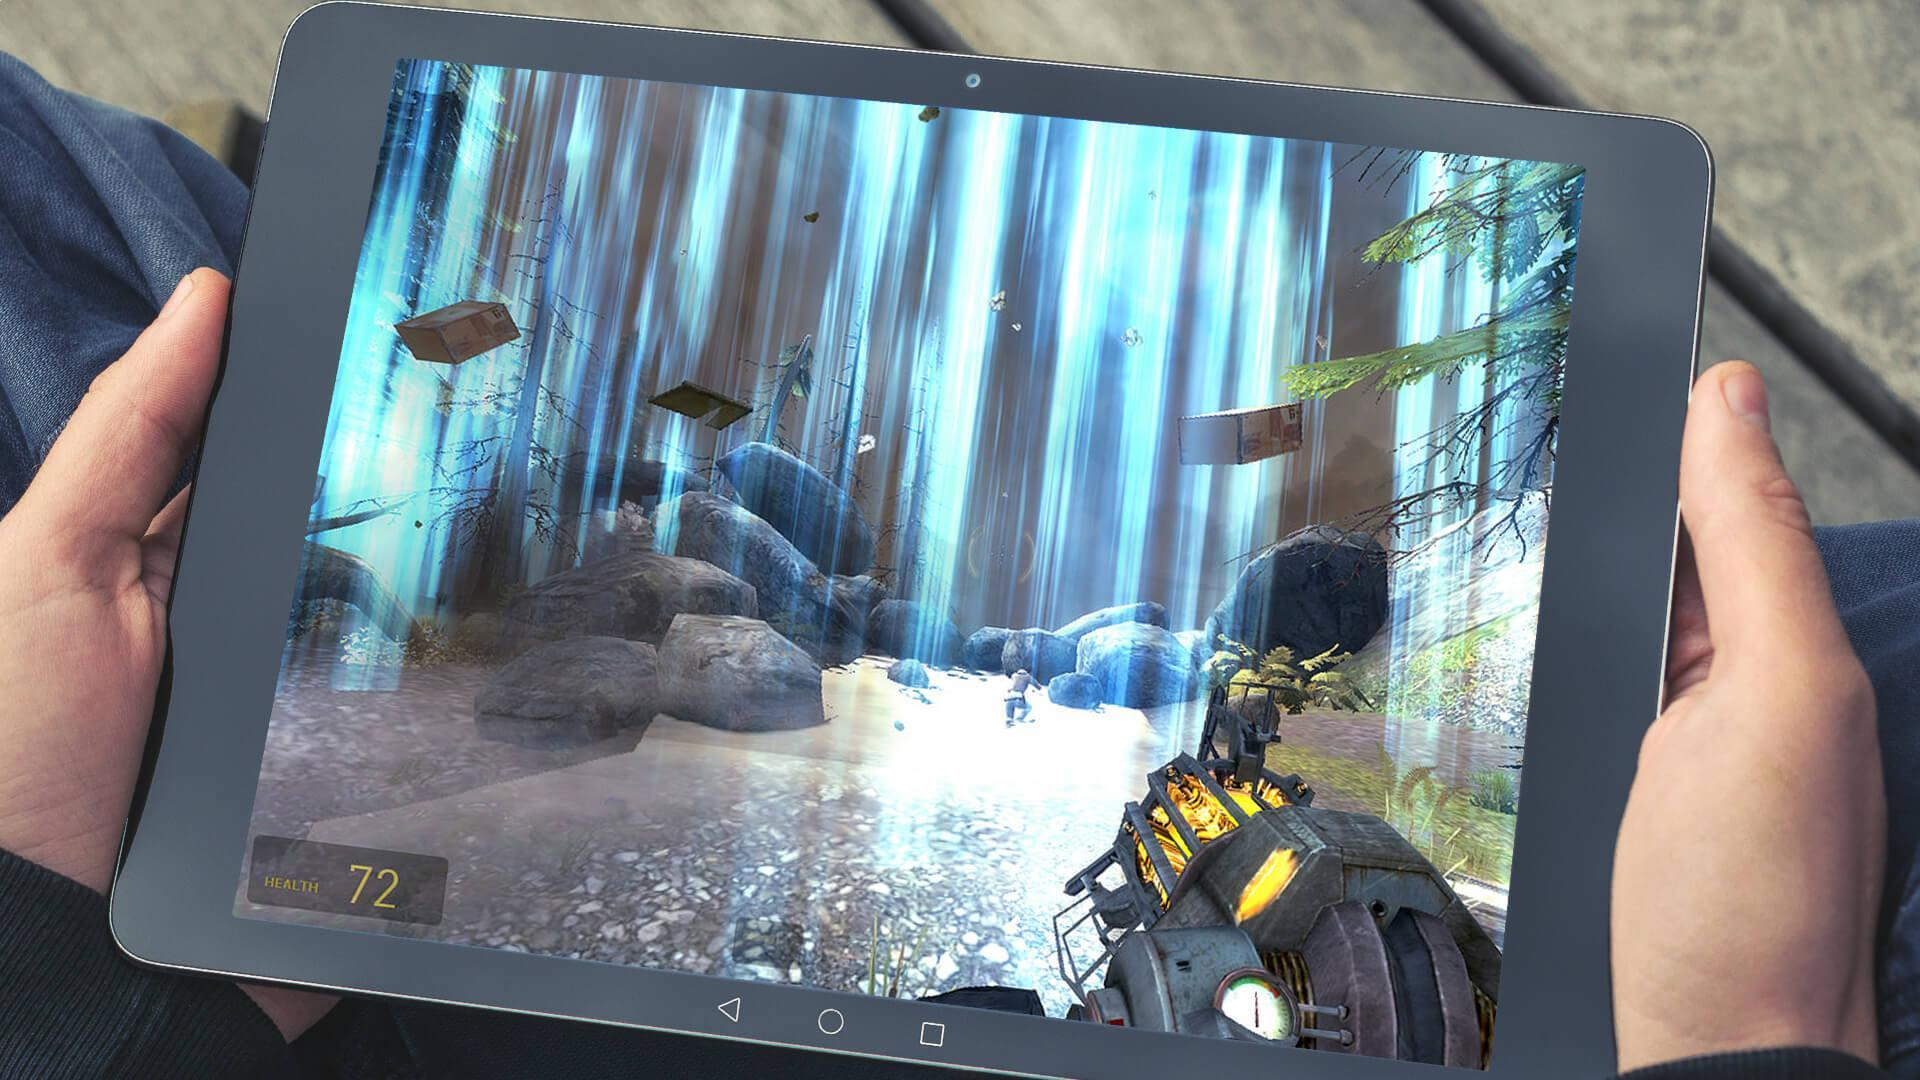 Hint Half Life 2 Walkthrough for Android - APK Download